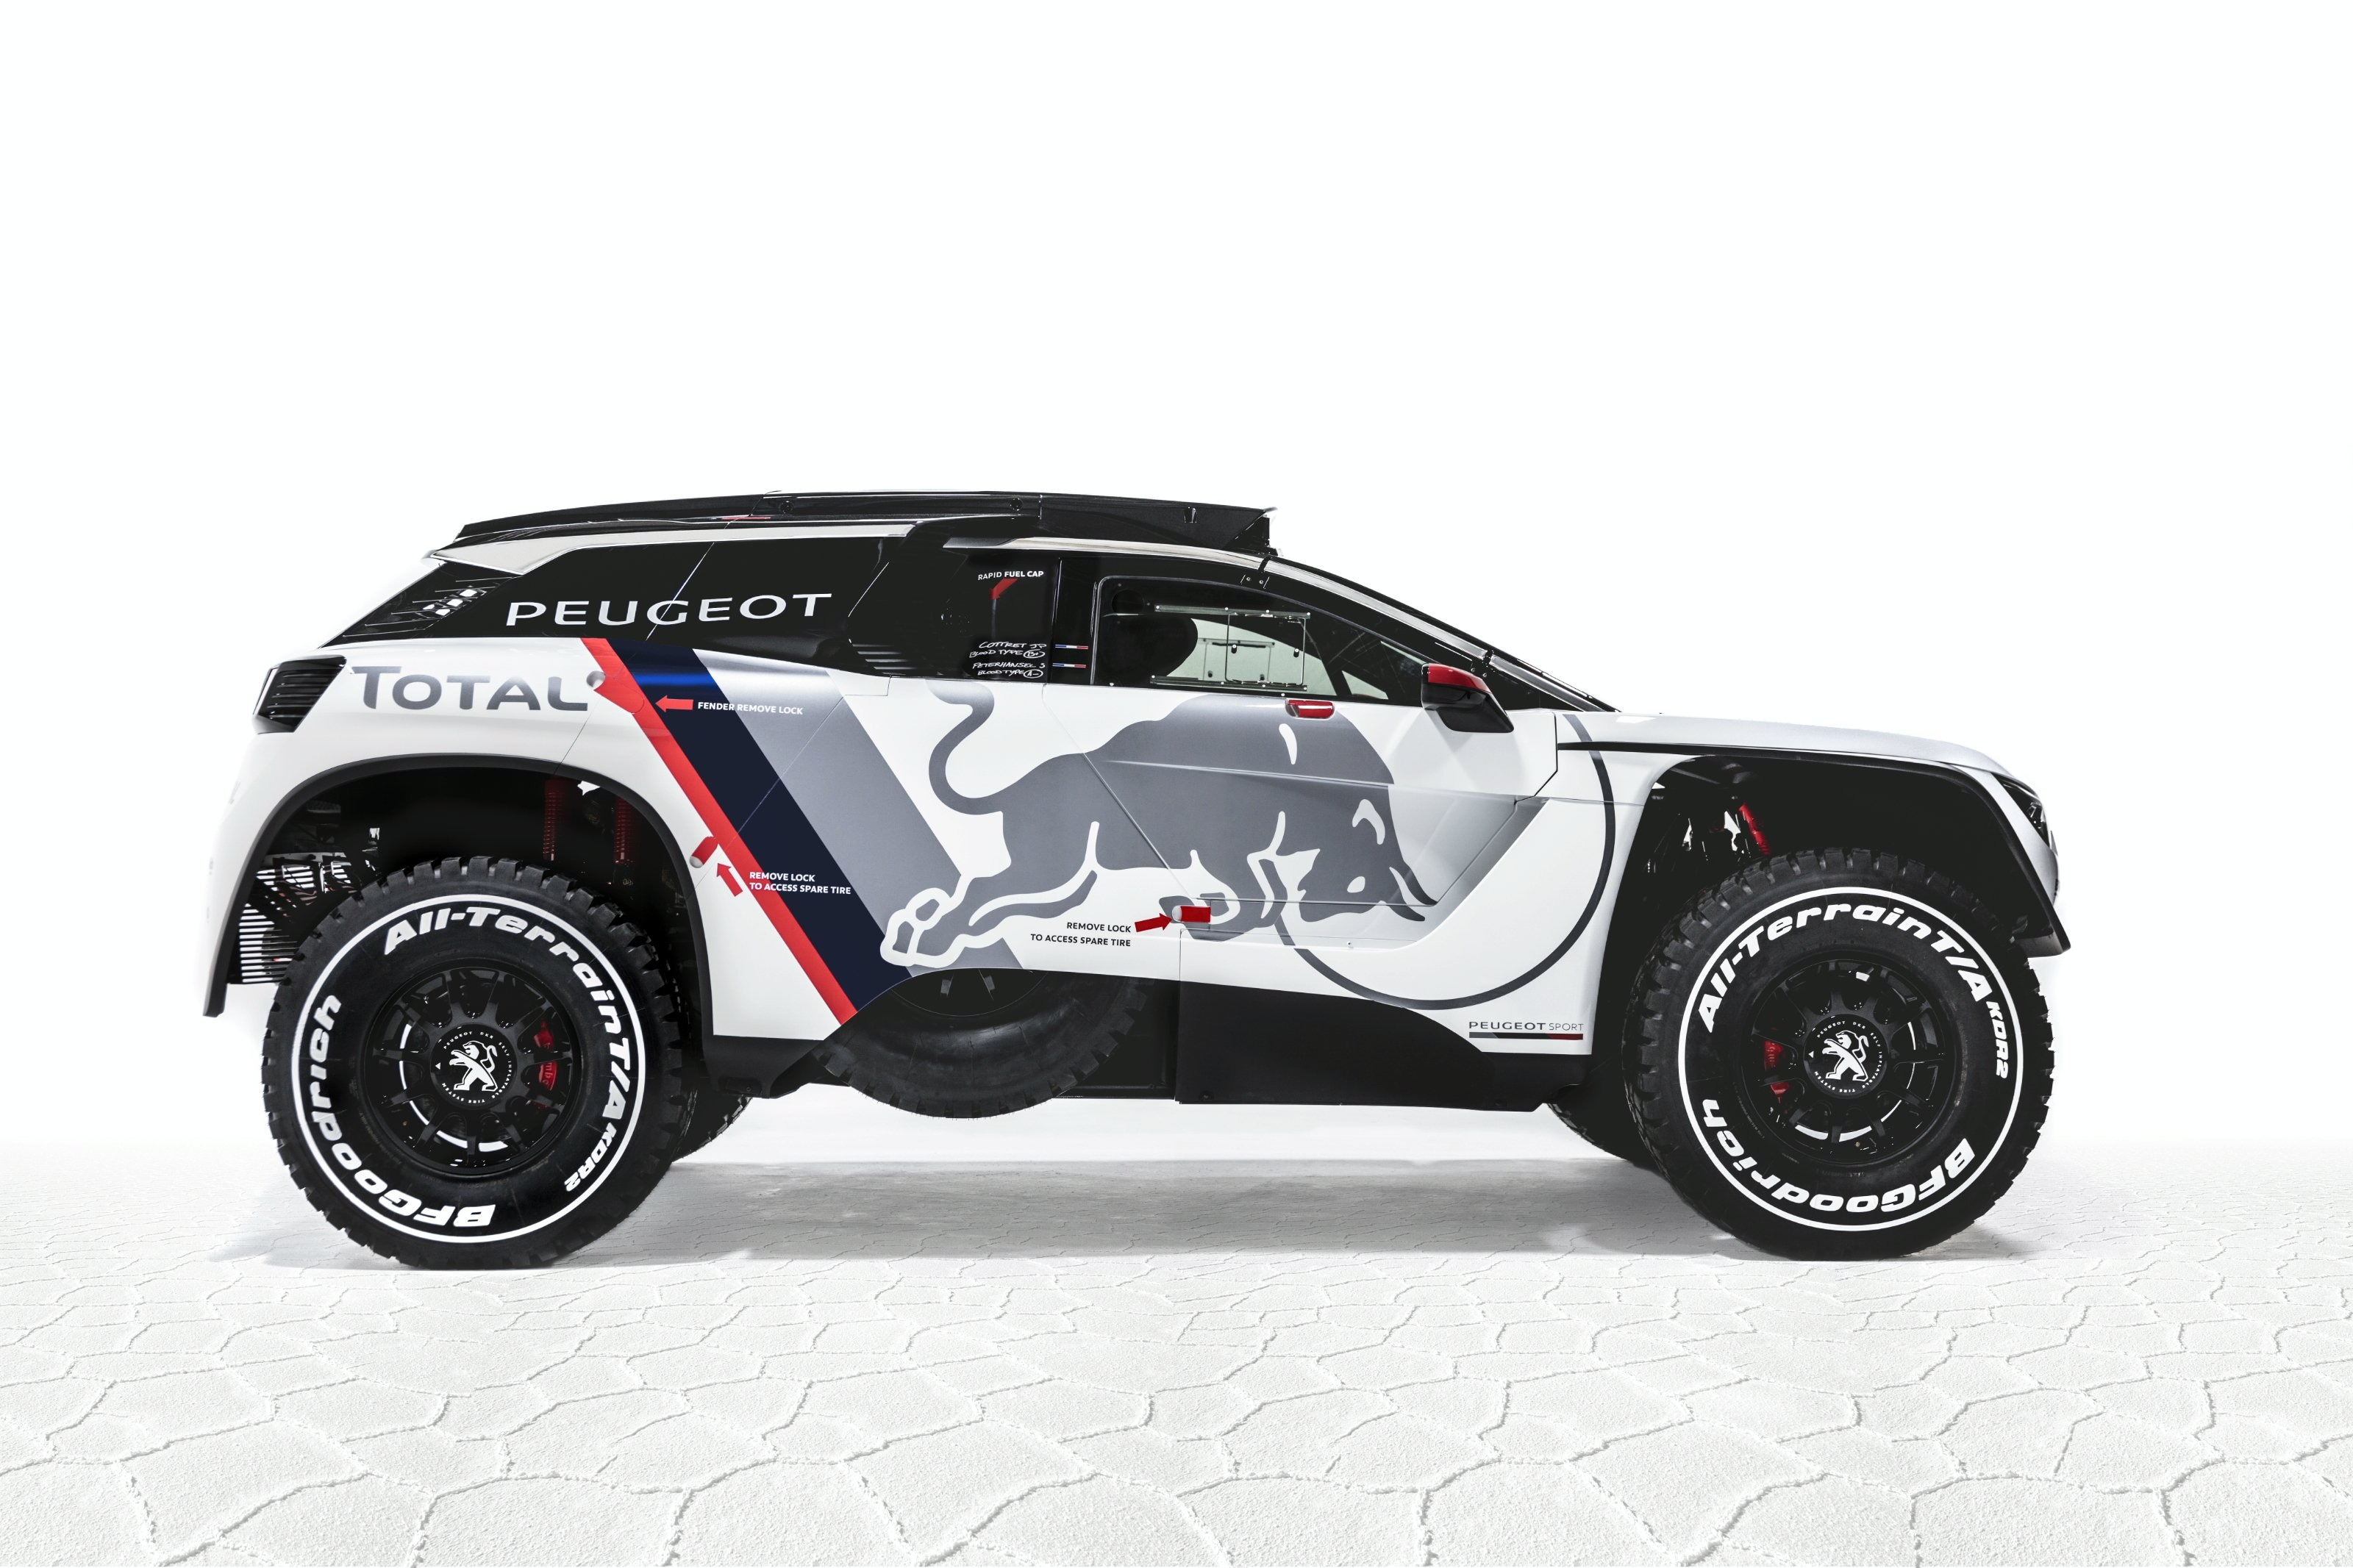 peugeot 3008 voici la version dkr pour le dakar 2017. Black Bedroom Furniture Sets. Home Design Ideas